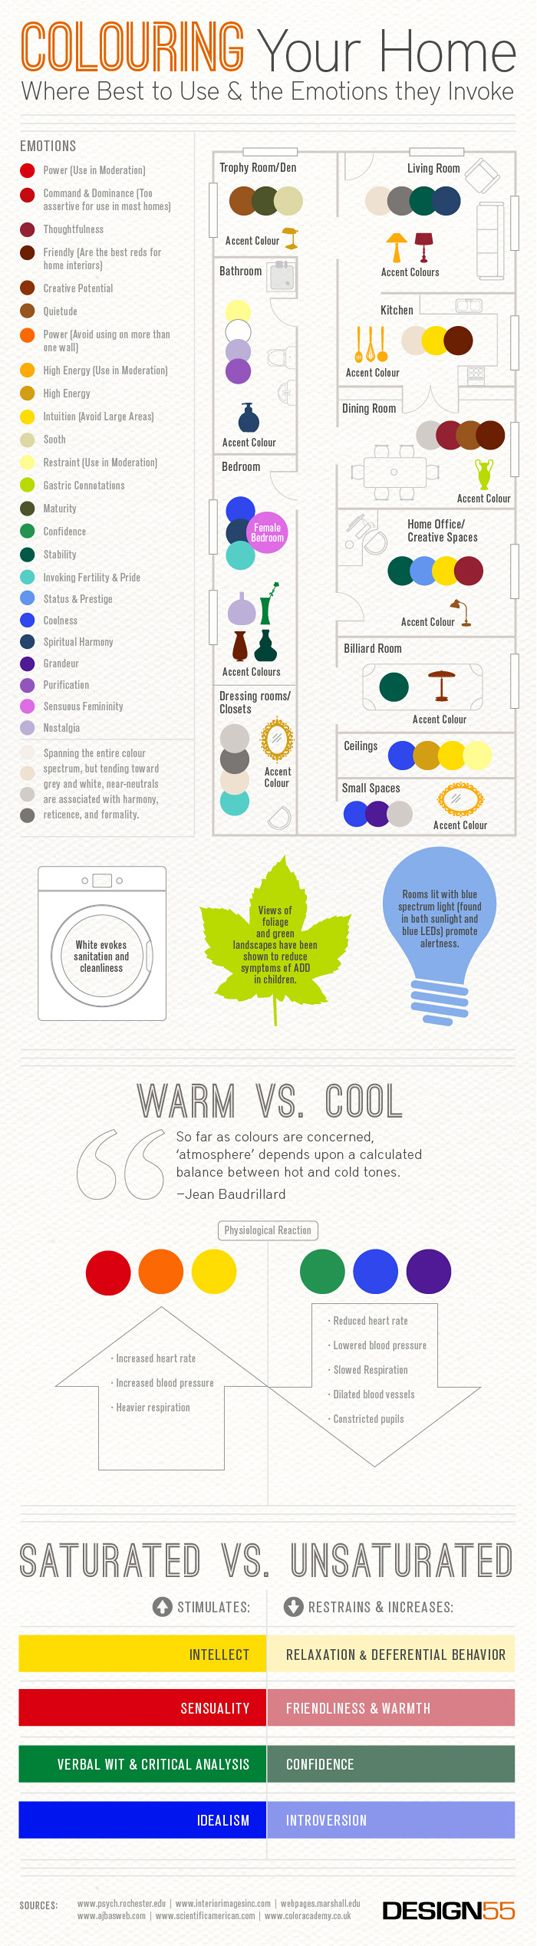 Coloring Your Home Infographic Green Design Sustainable Design Green Interiors Interior